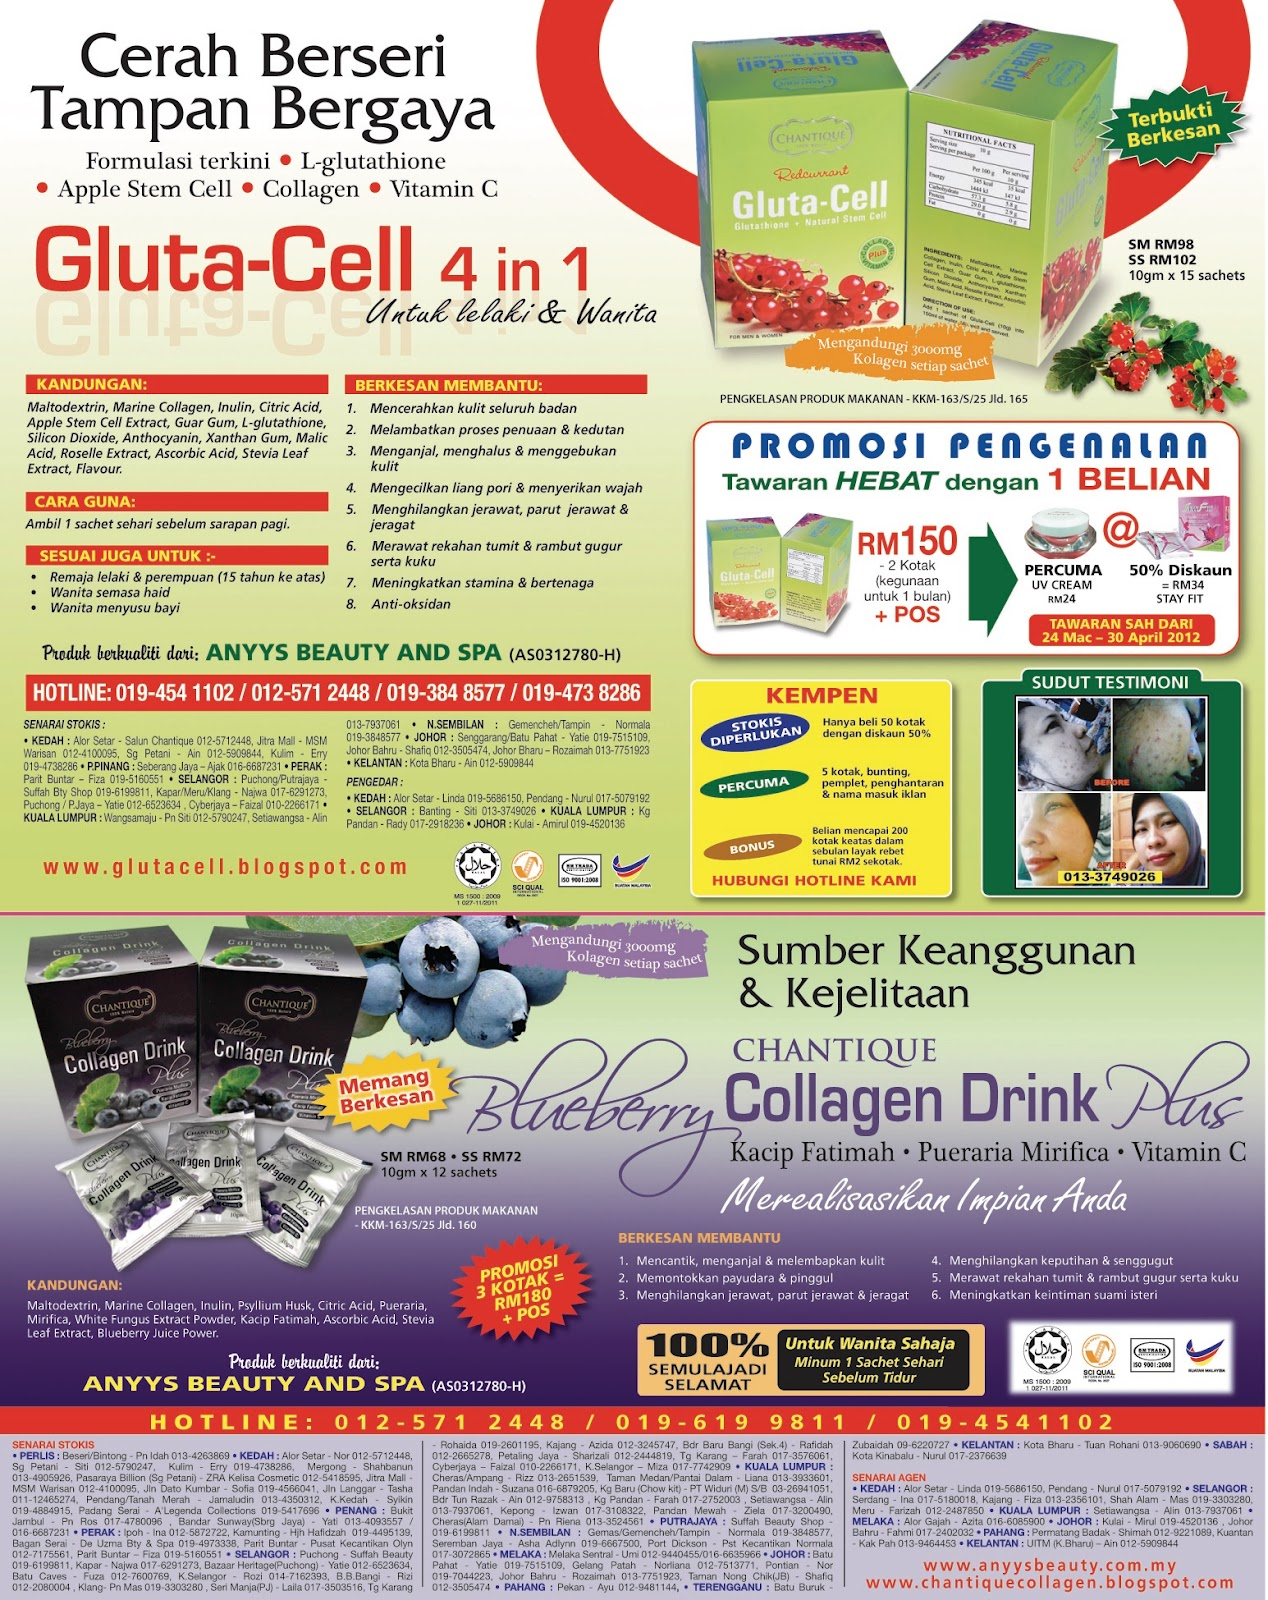 IKLAN GLUTA CELL Amp CHANTIQUE COLLAGEN DI UTUSAN S3